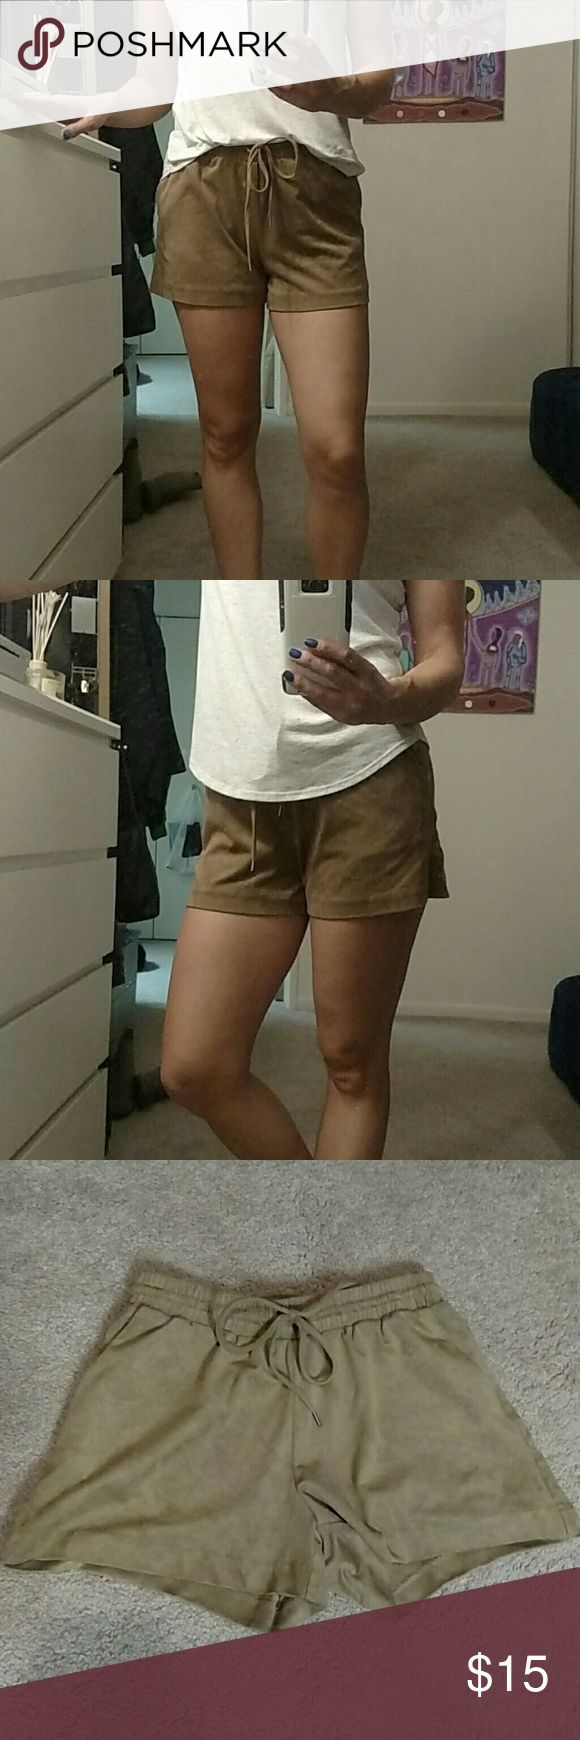 H&M shorts - suede looking Never worn faux suede shorts. Super soft micro-fiber material. Elastic waistband. Like new. I've never worn them out, just trying them on a few times. Can be worn as high waist with a cute crop top or boho style with baggy shirt. Hope they find a home. H&M Shorts